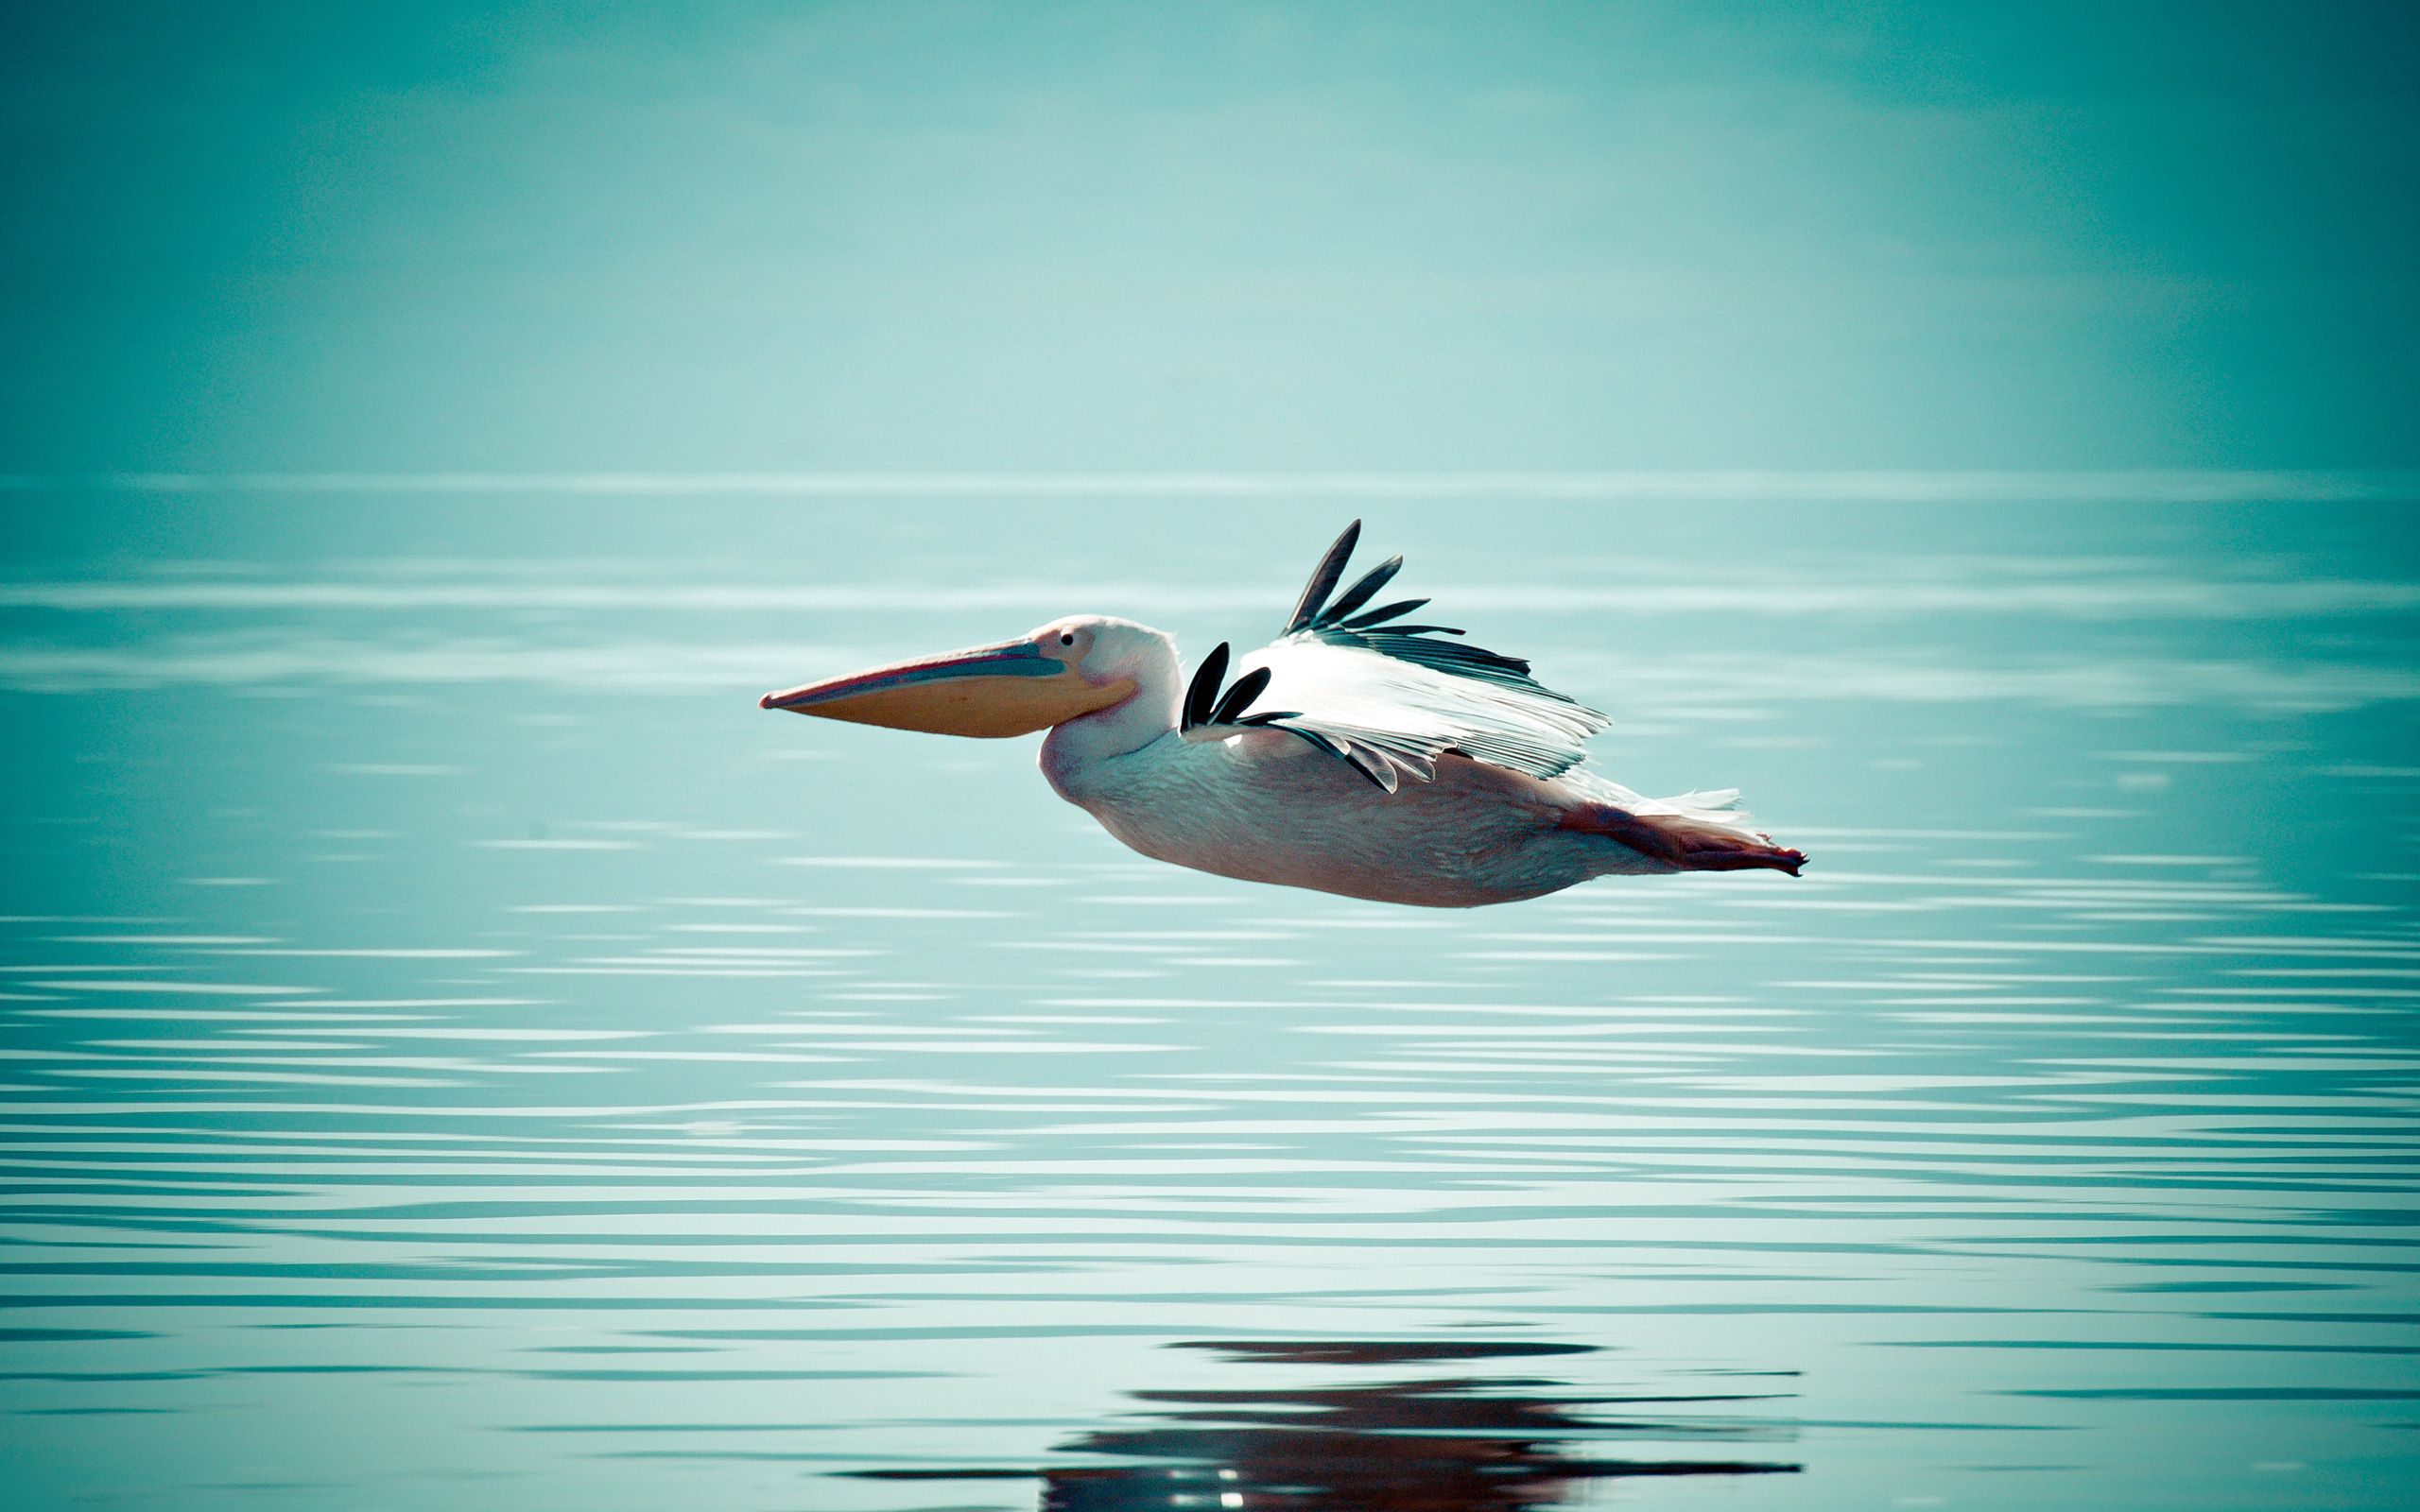 67956 download wallpaper Animals, Pelican, Bird, Water, Surface, Flight screensavers and pictures for free